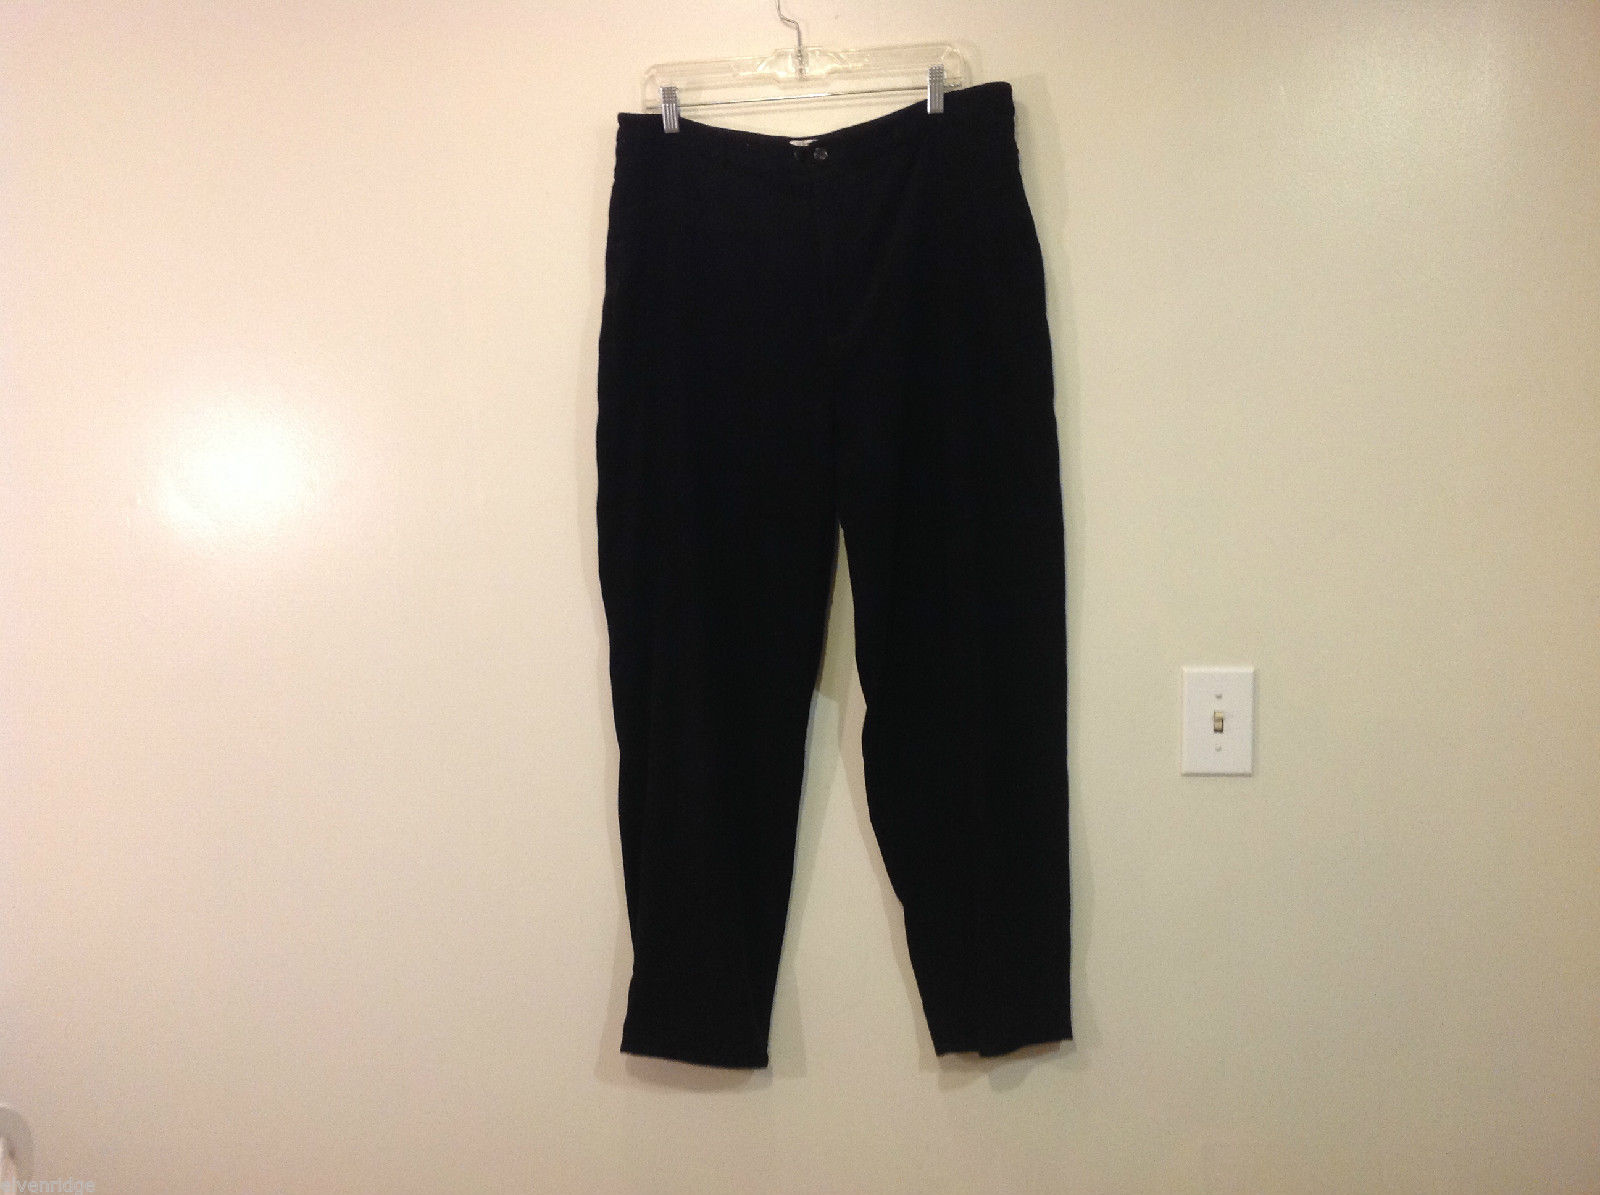 Talbots Stretch Black Pants, No Size Tag (measurements below), polyester/spandex